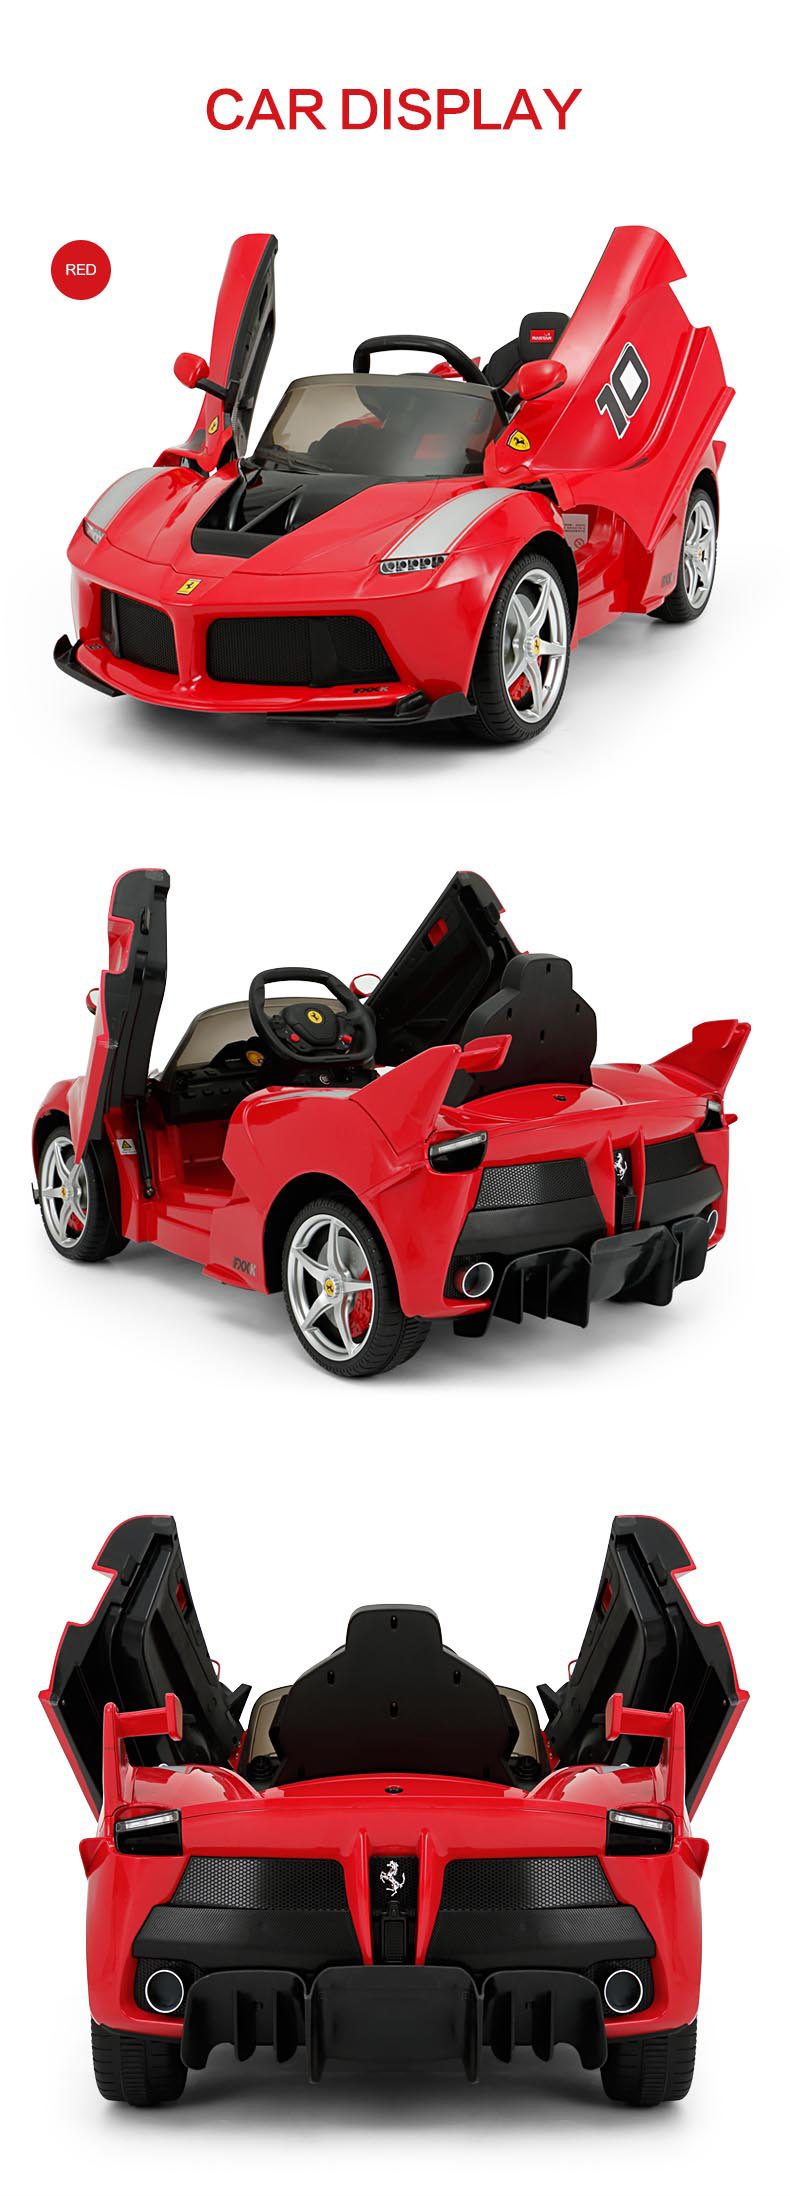 Rastar negozi di giocattoli LaFerrari Ferrari licenza all'ingrosso ride on battery operated bambini baby car